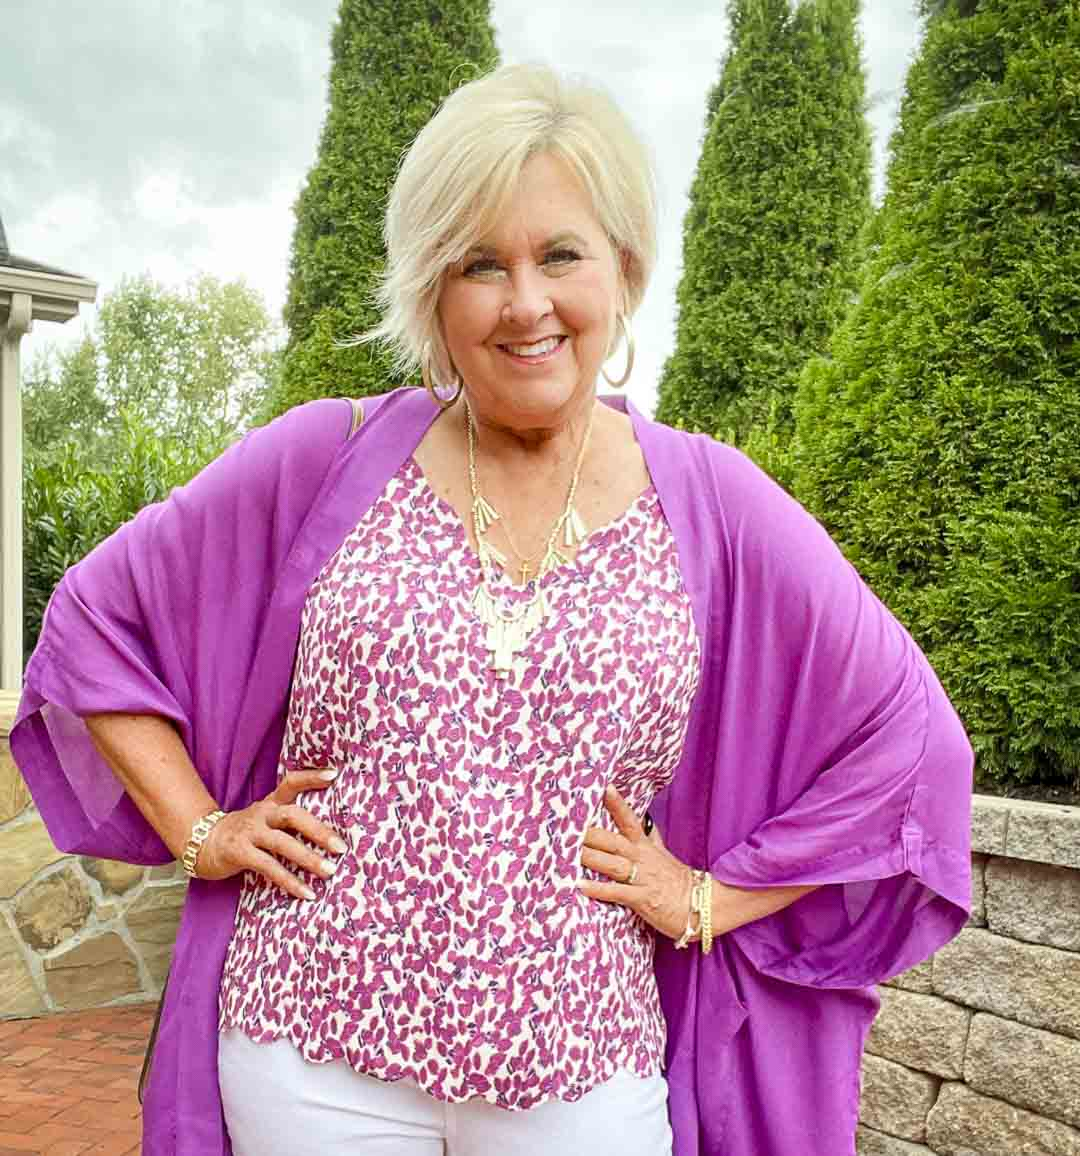 Over 40 fashion blogger, Tania Stephens is wearing a purple cardigan with a printed camisole